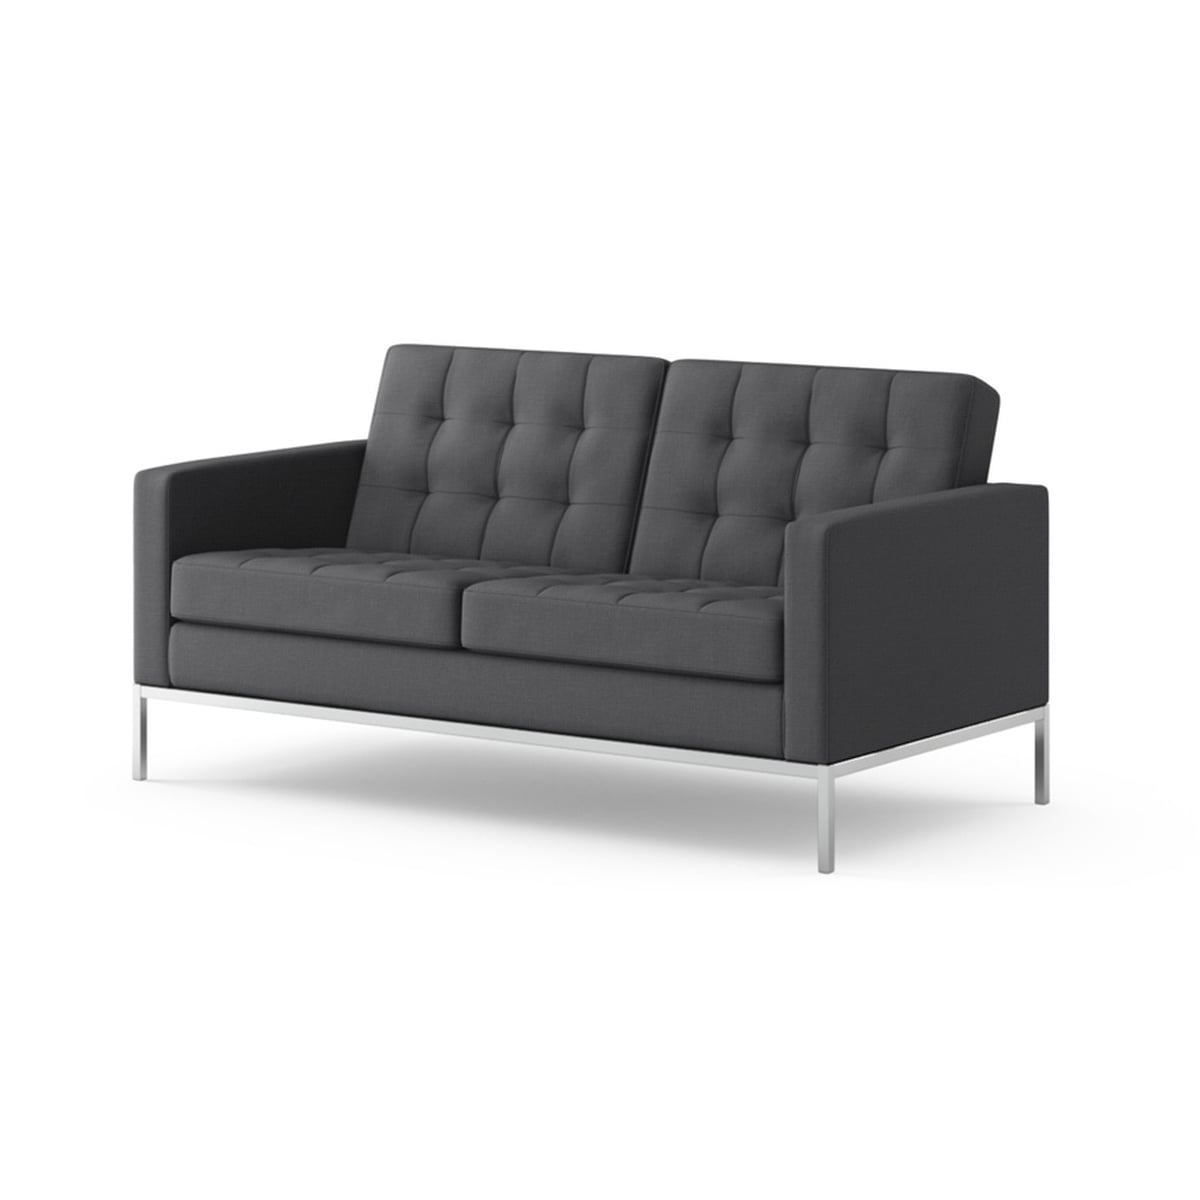 Widely Used Florence Sofas And Loveseats With Regard To Knoll Florence 2 Seats Sofa In The Shop (View 20 of 20)